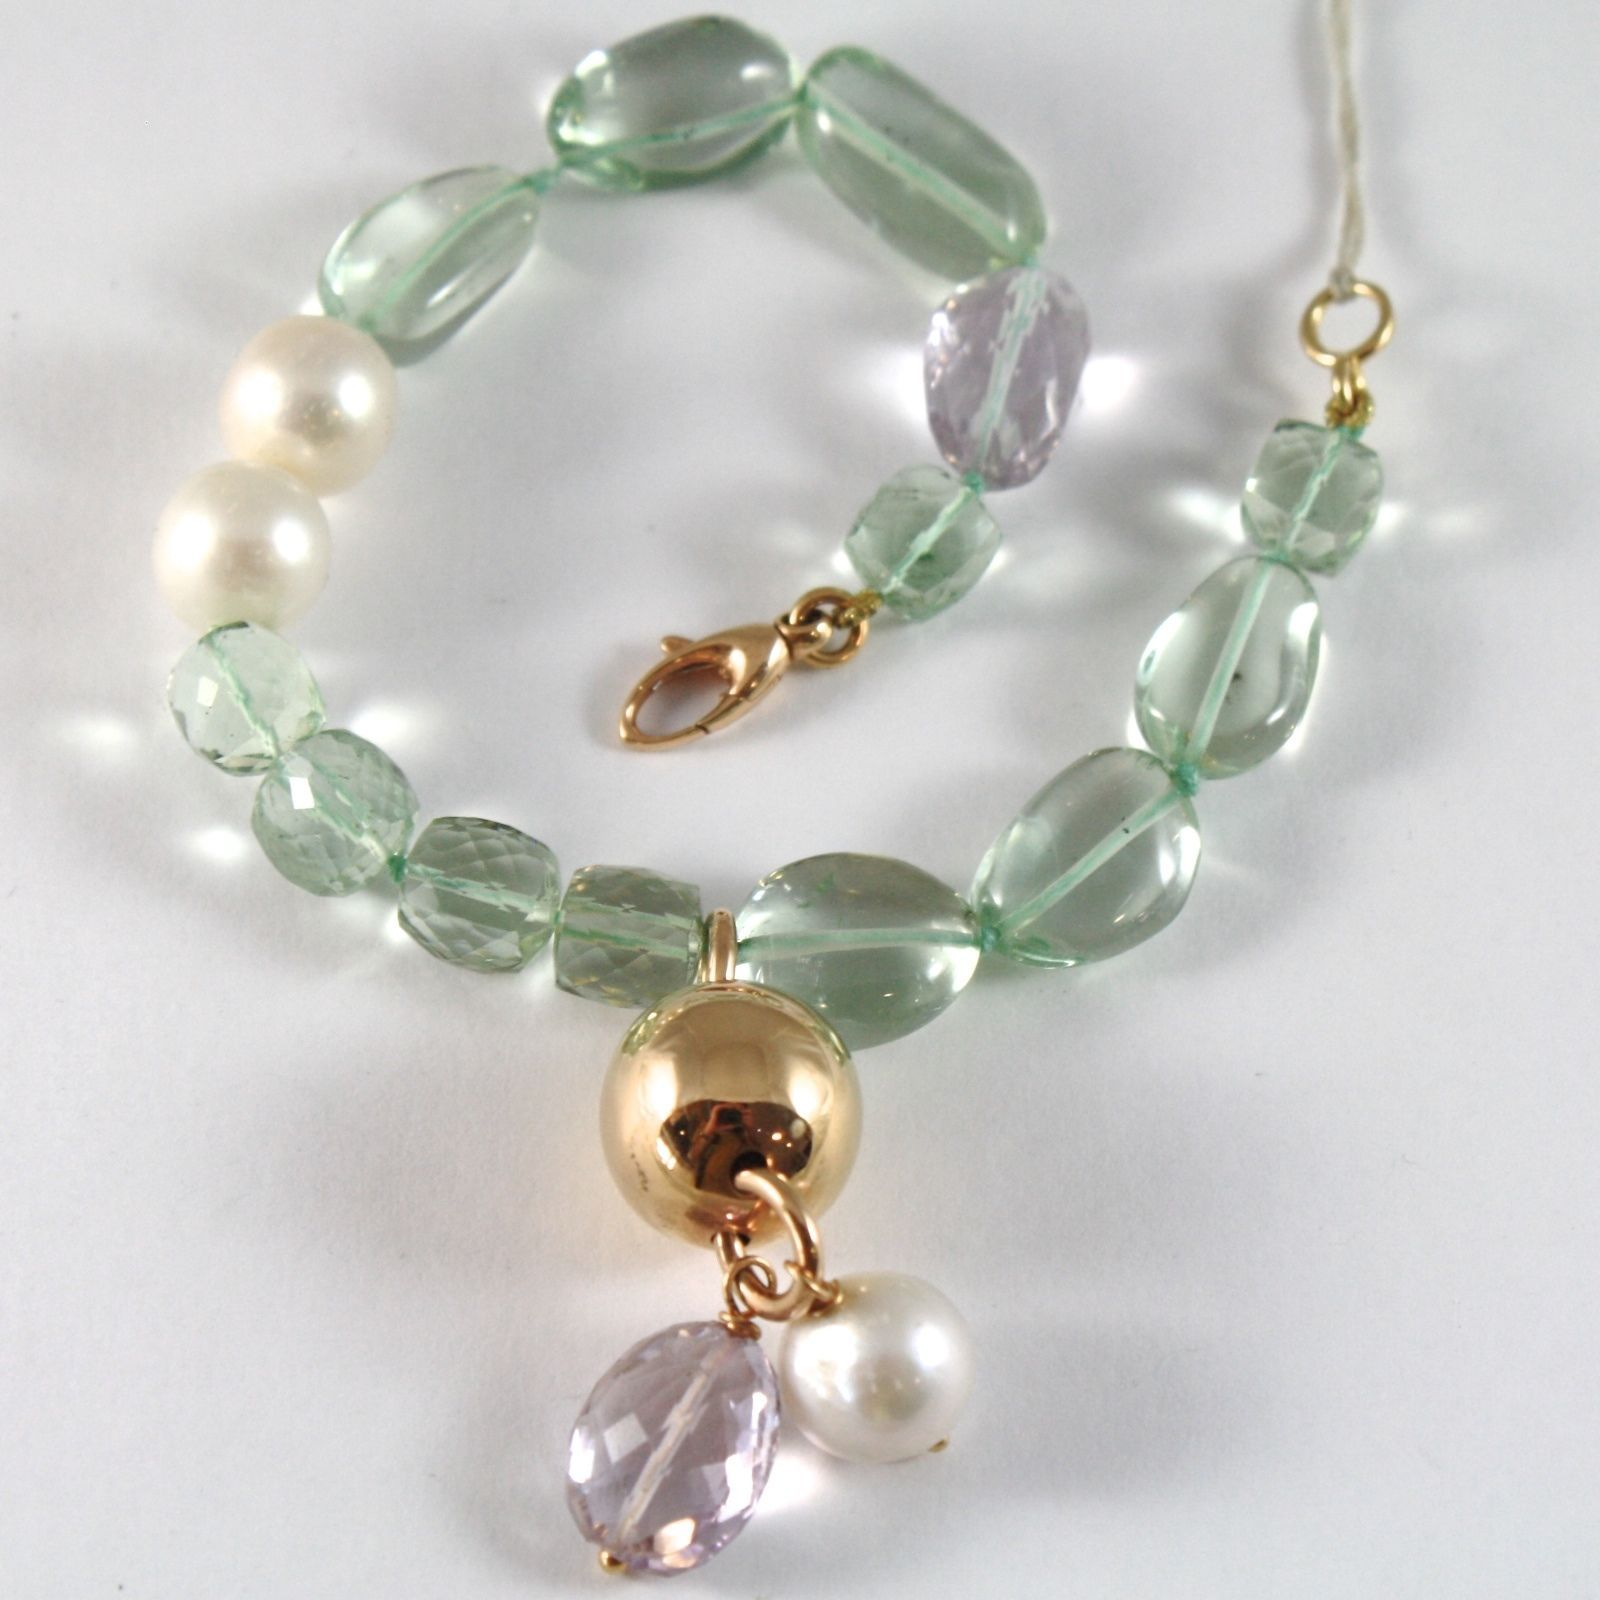 BRACELET ROSE GOLD 750 18K, WHITE PEARLS, AMETHYST PURPLE, PERIDOT, SPHERE